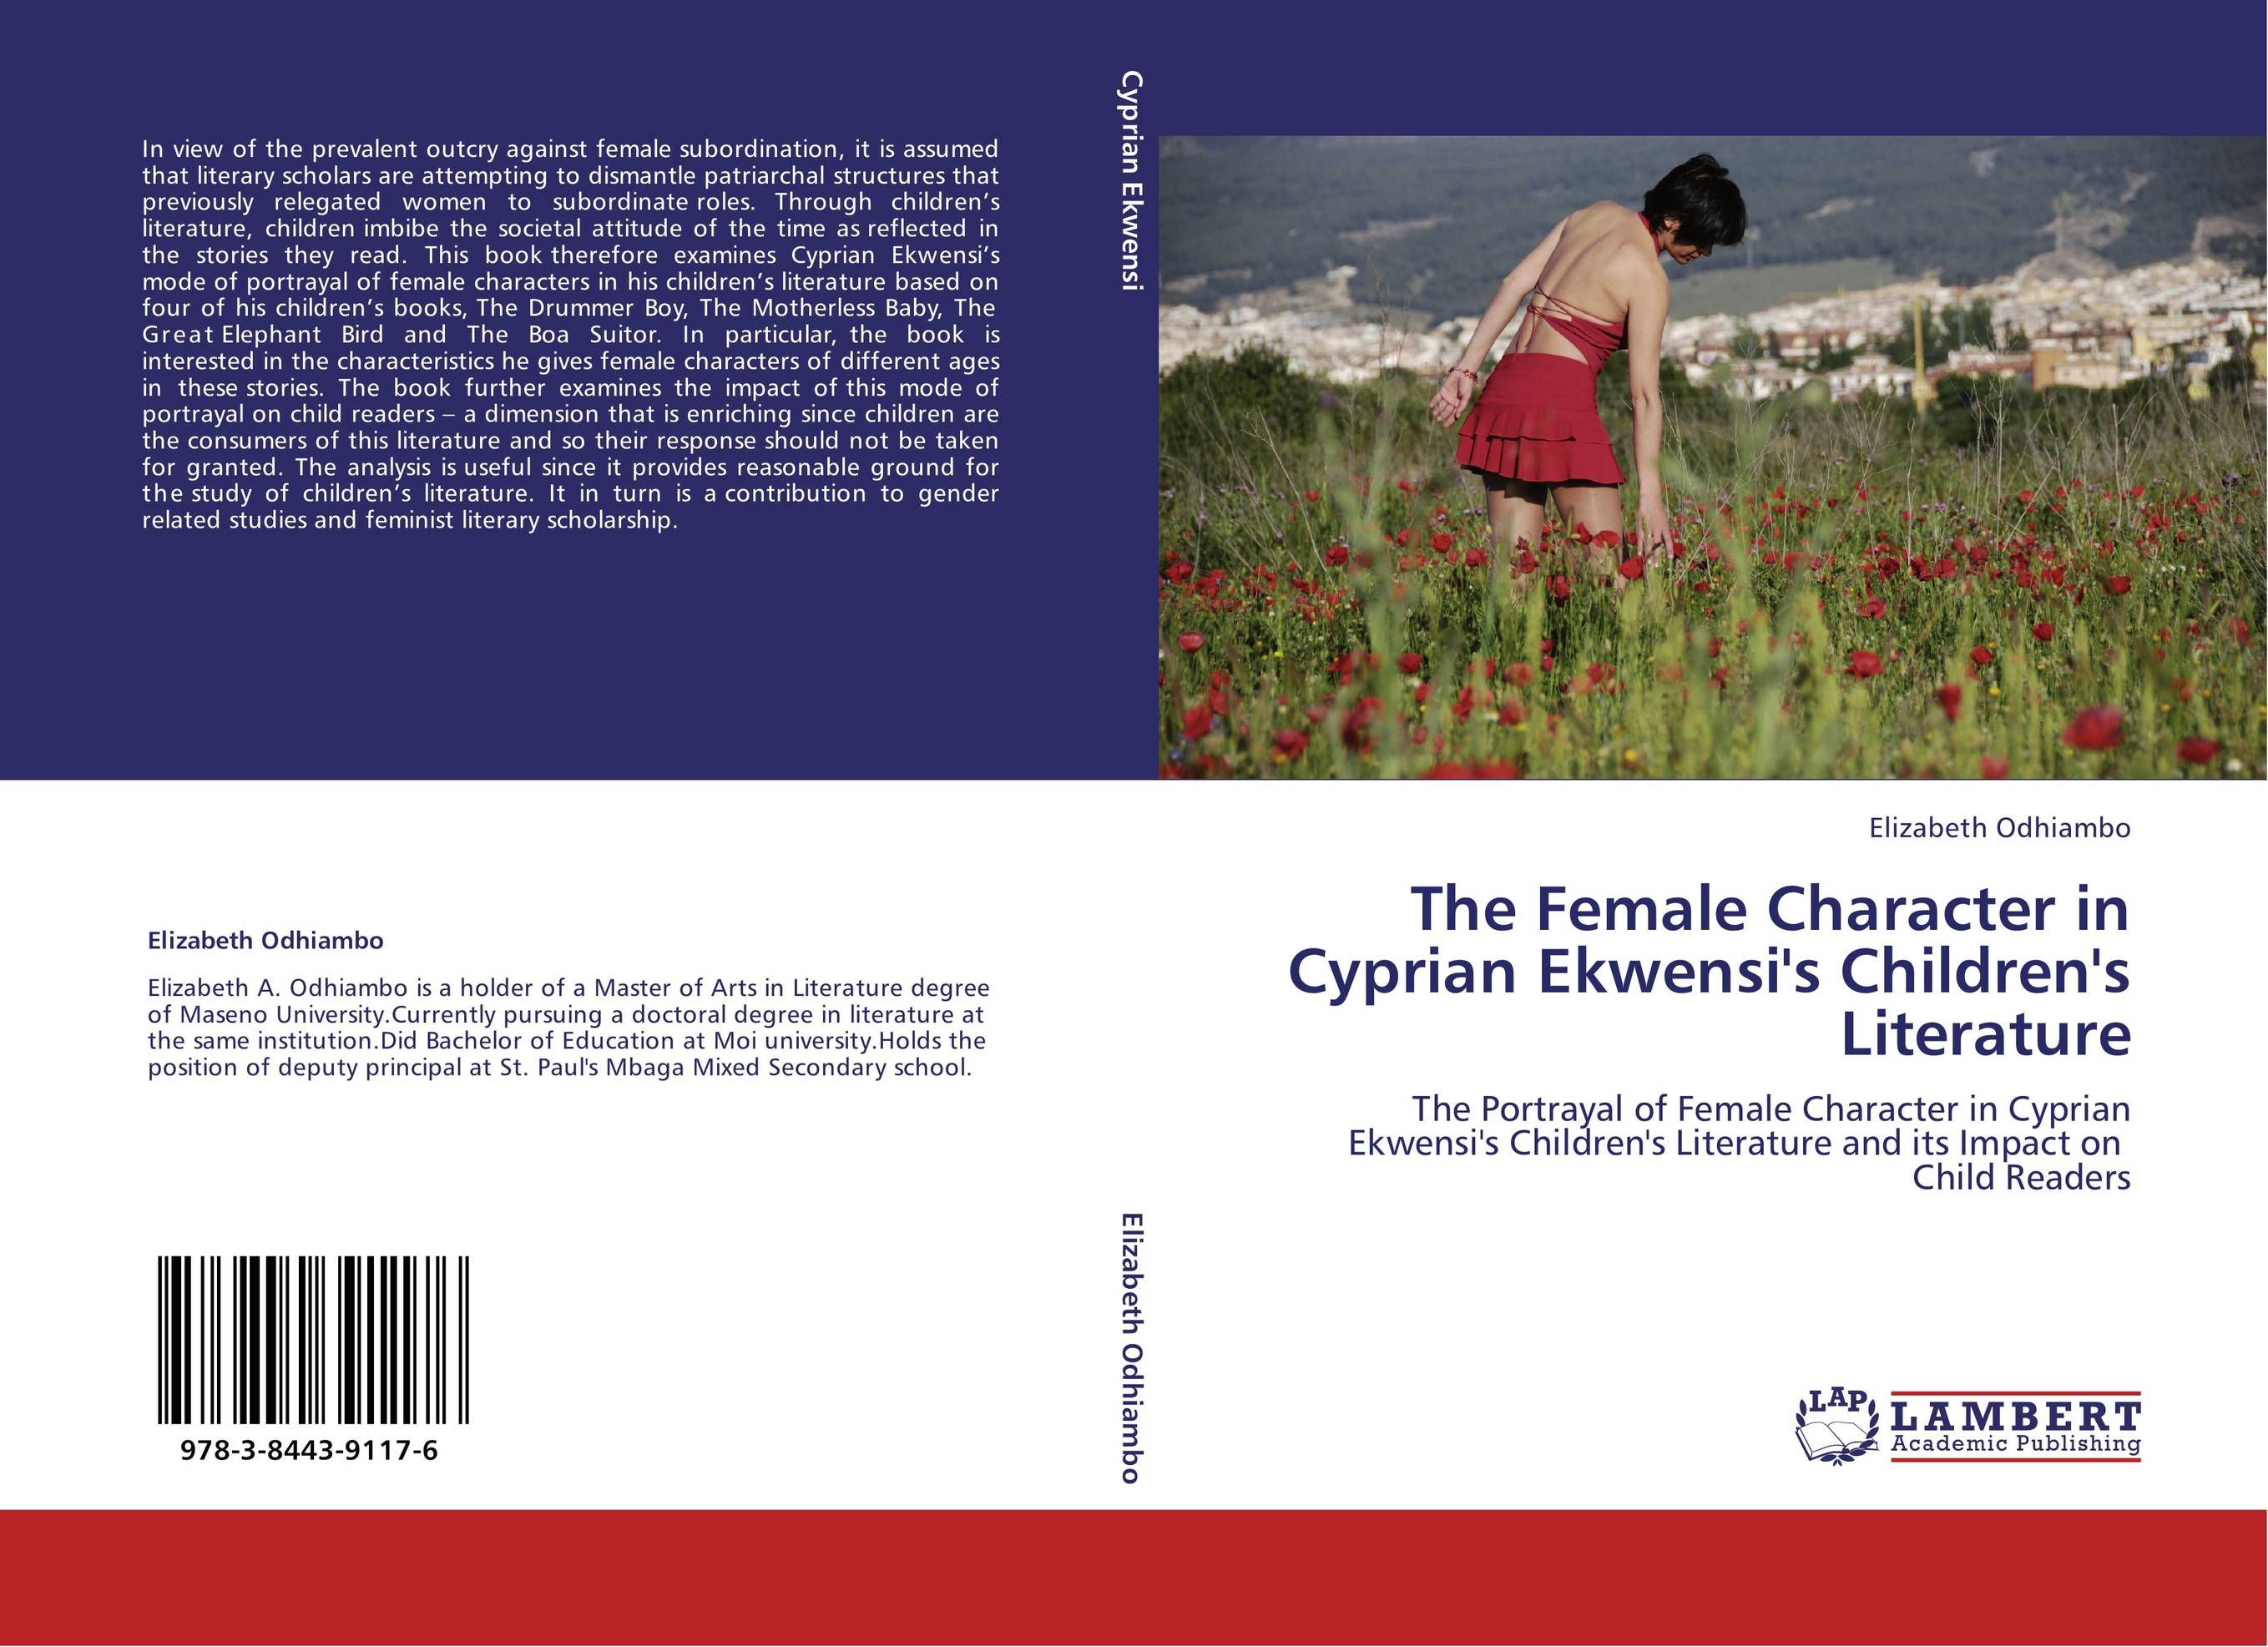 an analysis of the portrayal of female characters in gates of ivory by margaret drabble With twentieth-century freudian and marxist analysis and two centuries of female tradition, writers such as iris murdoch, muriel spark, doris lessing, margaret drabble, as byatt, and beryl bainbridge access women's experiences using previously taboo language and situations, anger and sexuality are accepted as sources of female creative.